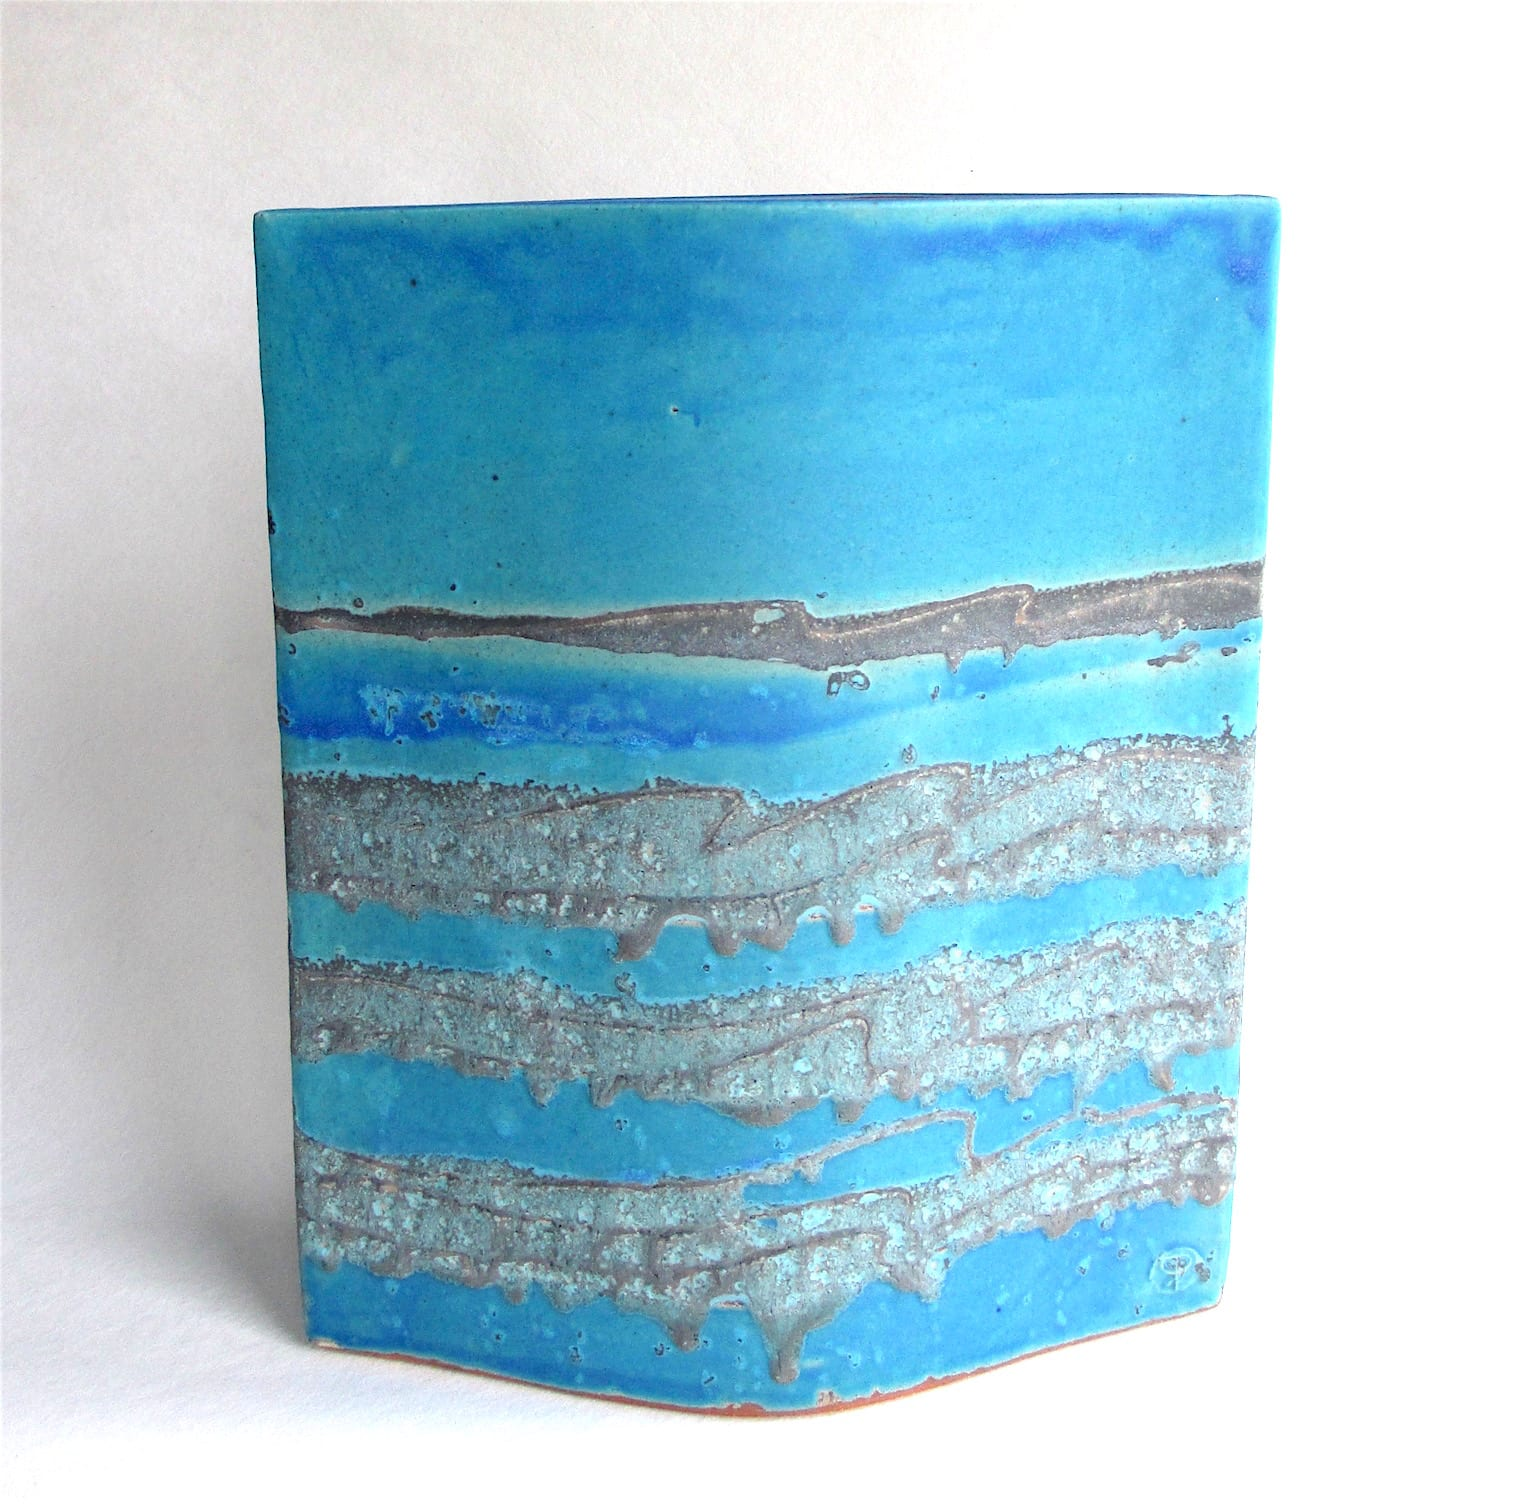 """<span class=""""link fancybox-details-link""""><a href=""""/artists/44-sarah-perry/works/7300-sarah-perry-blue-water-ellipse-2020/"""">View Detail Page</a></span><div class=""""artist""""><strong>Sarah Perry</strong></div> b. 1945 <div class=""""title""""><em>Blue Water Ellipse</em>, 2020</div> <div class=""""signed_and_dated"""">impressed with the artist's seal mark 'SP'</div> <div class=""""medium"""">stoneware </div> <div class=""""dimensions"""">h 29 x w 24 cm</div><div class=""""copyright_line"""">Ownart: £35.20 x 10 Months, 0% APR</div>"""